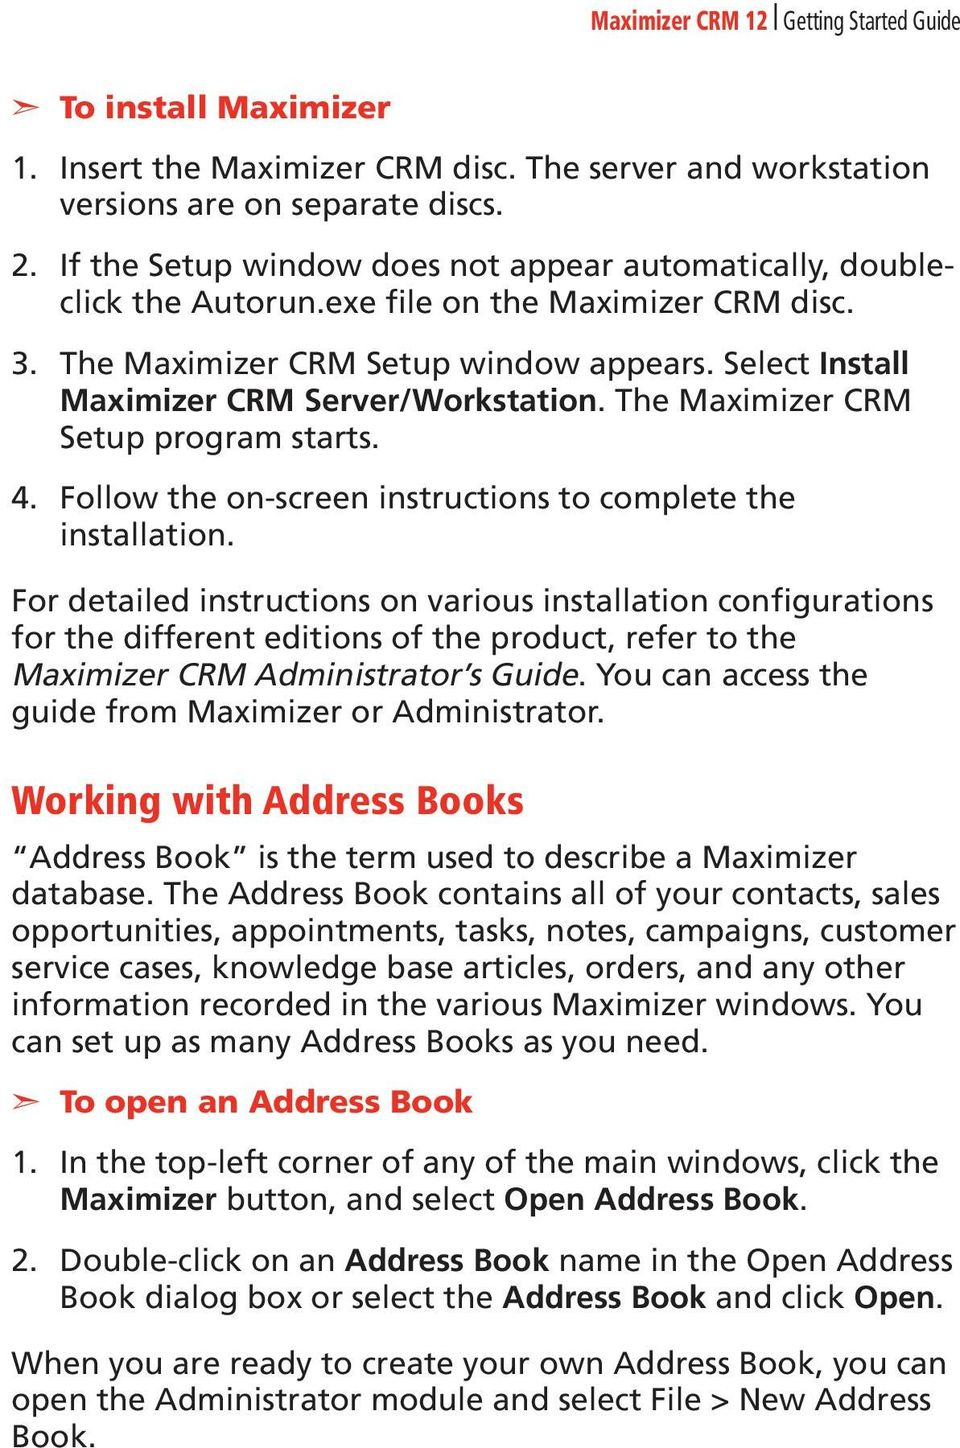 The Maximizer CRM Setup program starts. Follow the on-screen instructions to complete the installation.